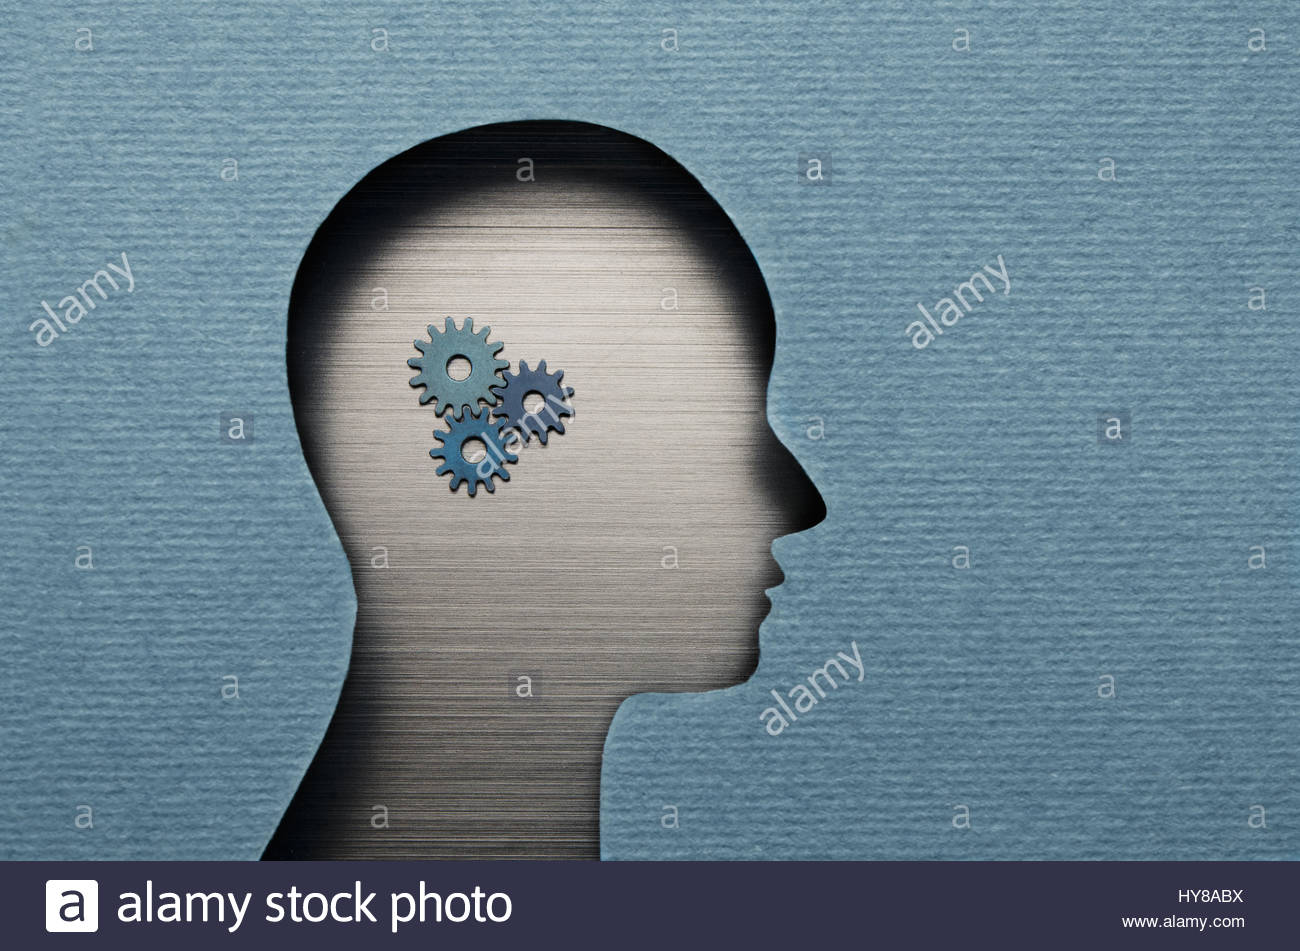 Thinking Mechanism. Human head with gears inside - Stock Image